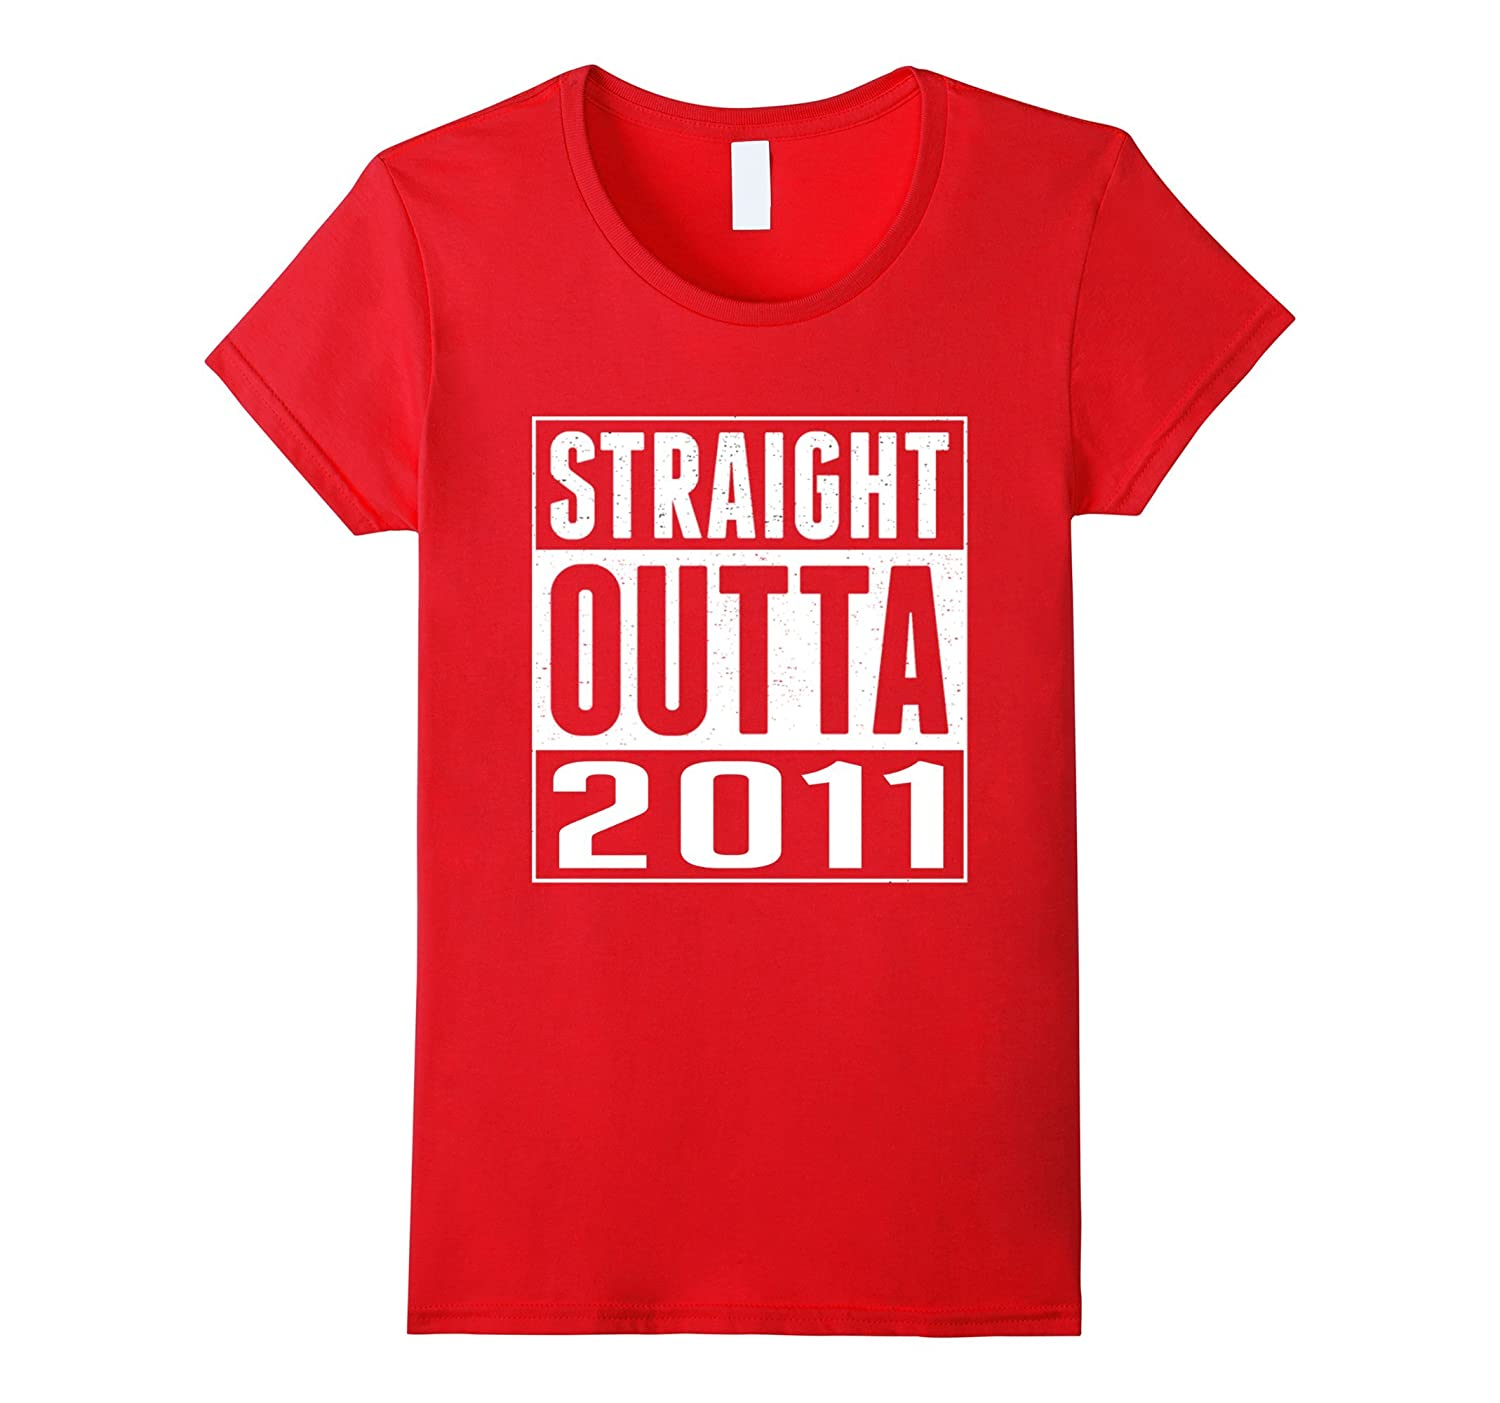 6th Birthday Gift T-Shirt STRAIGHT OUTTA 2011 Shirt